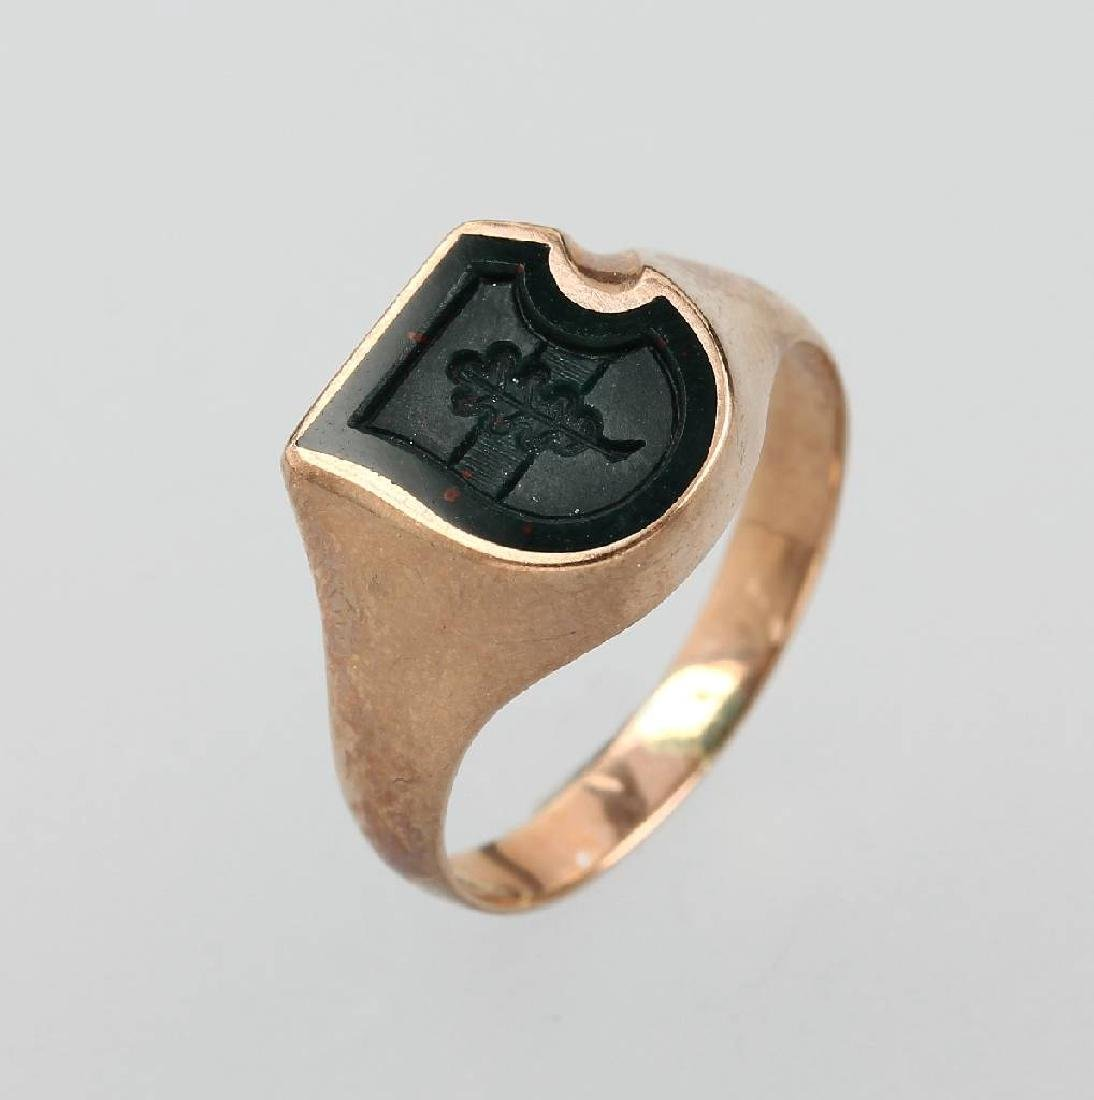 8 kt gold signet ring with jasper, approx. 1900s